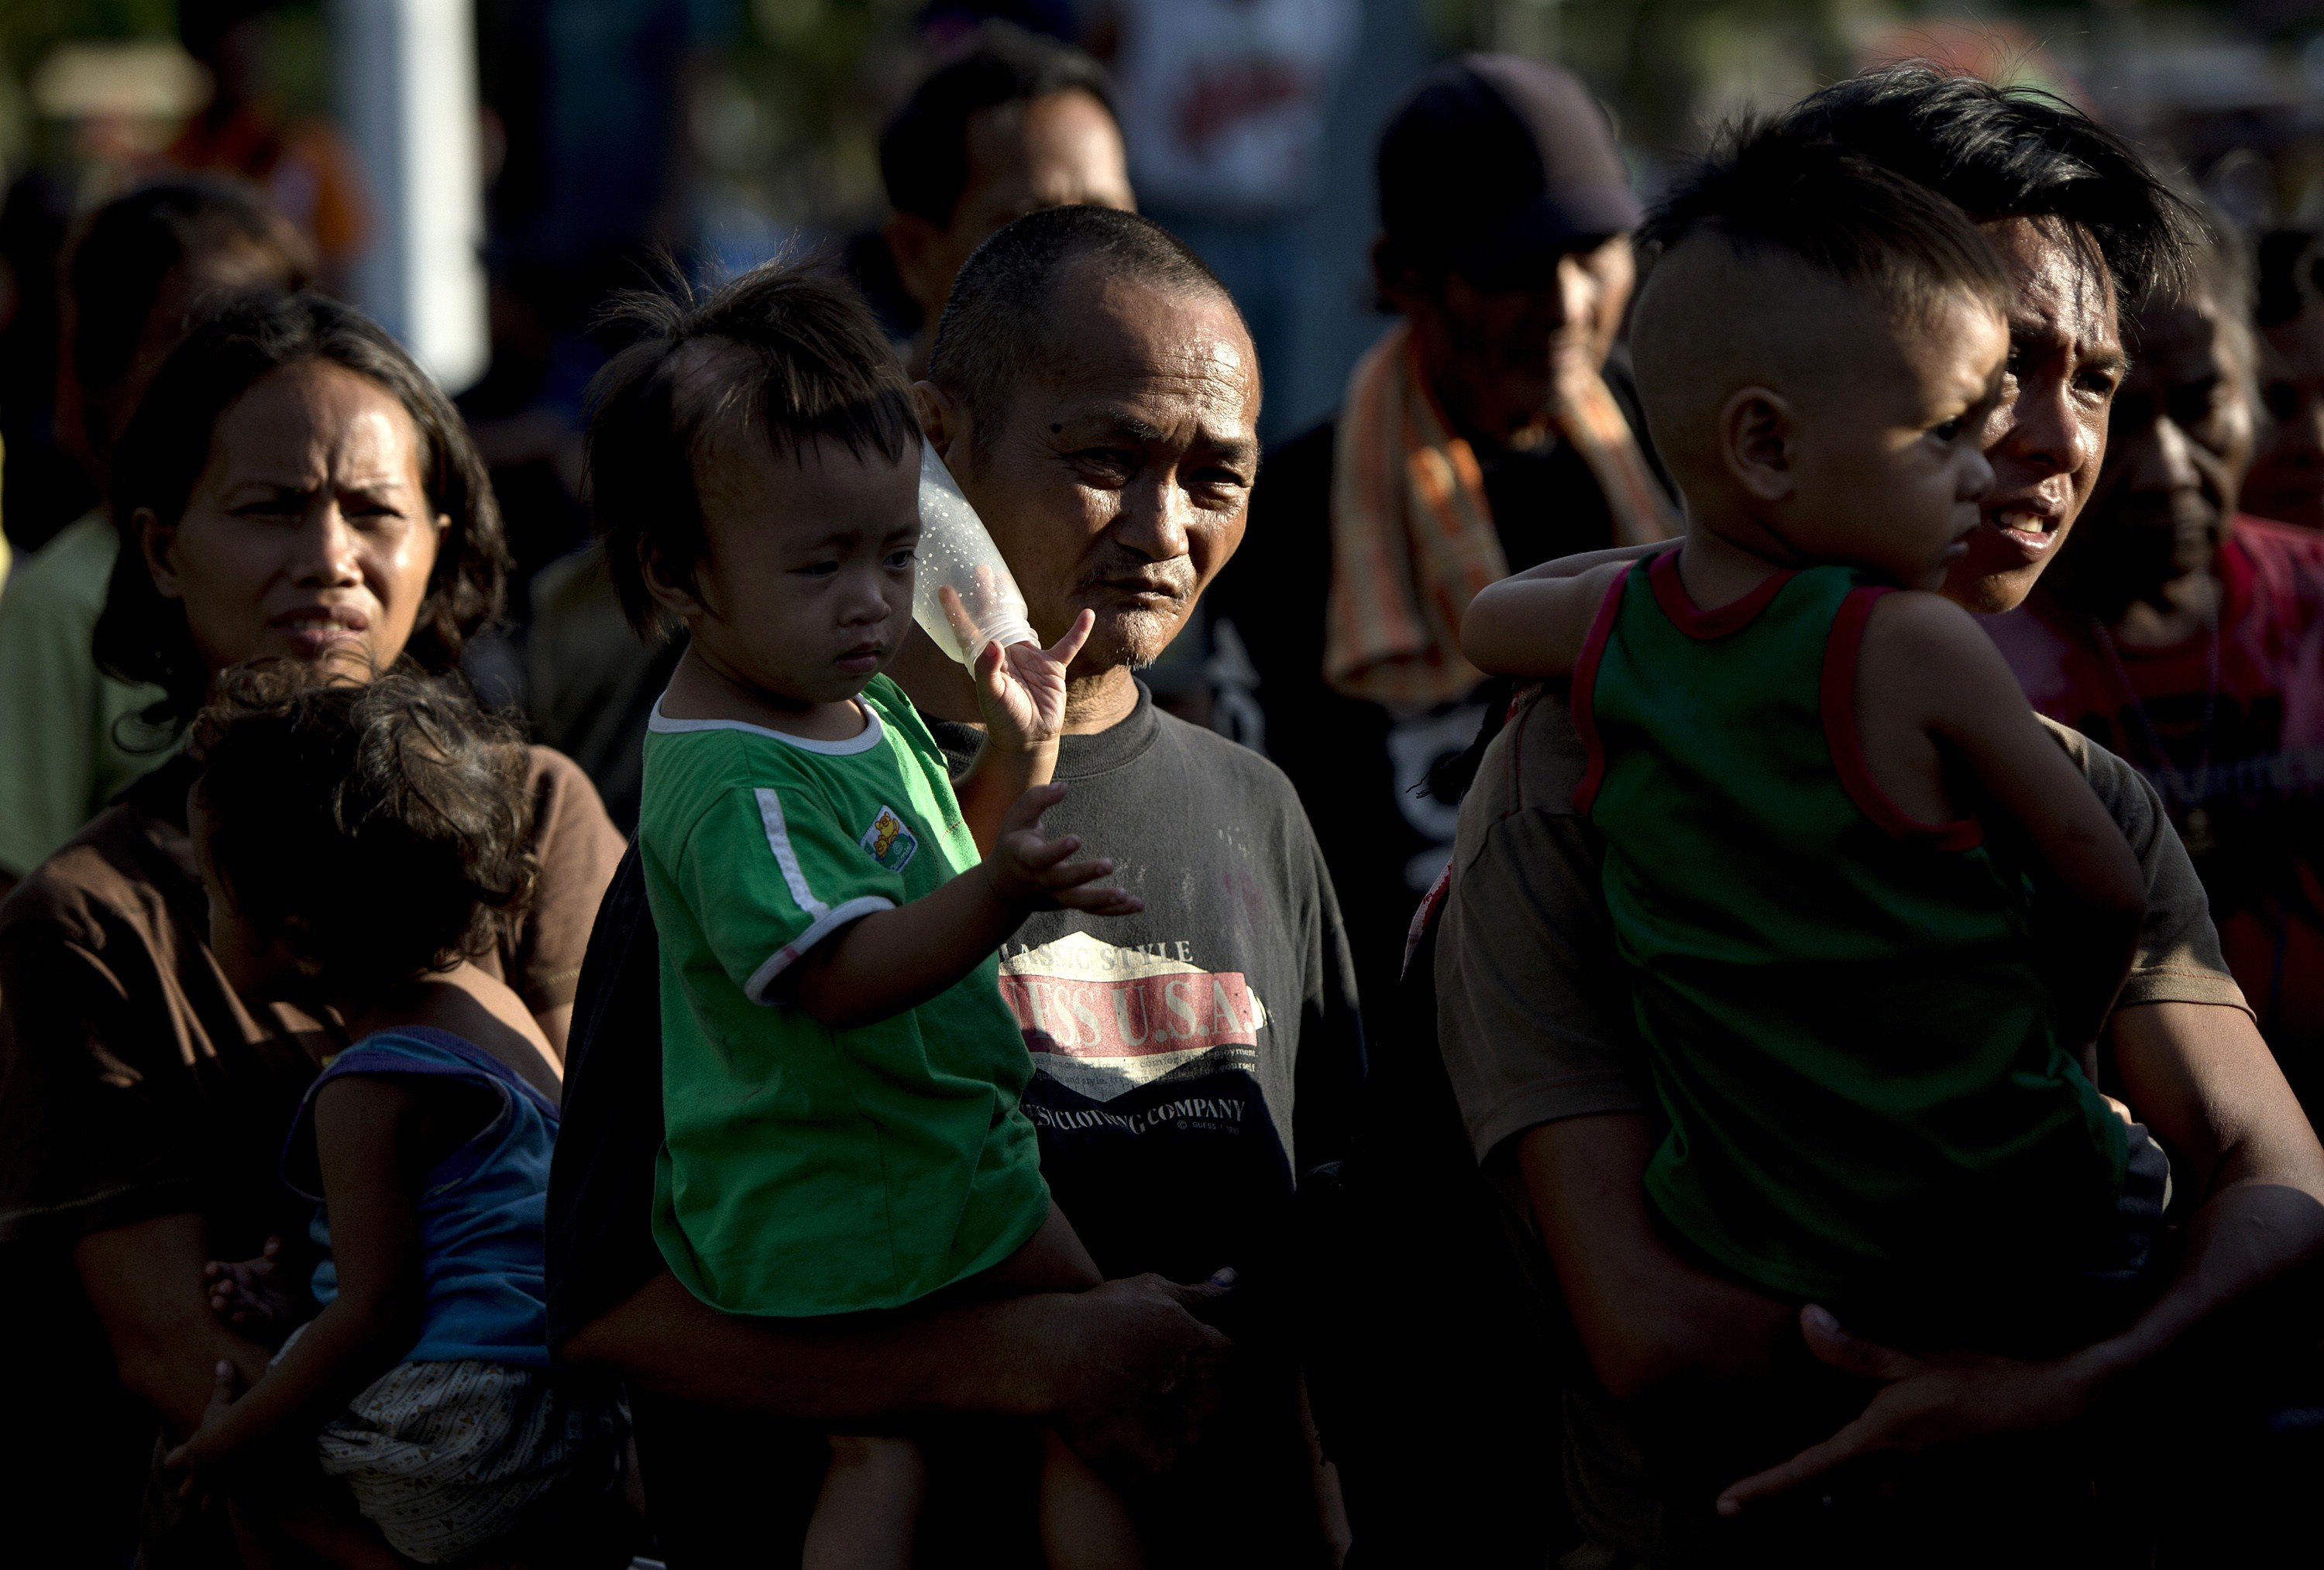 Homeless people queue to recieve food and clothing from a charity group at a park in Manila on August 24, 2014. read NOEL CELIS/AFP/Getty Images)